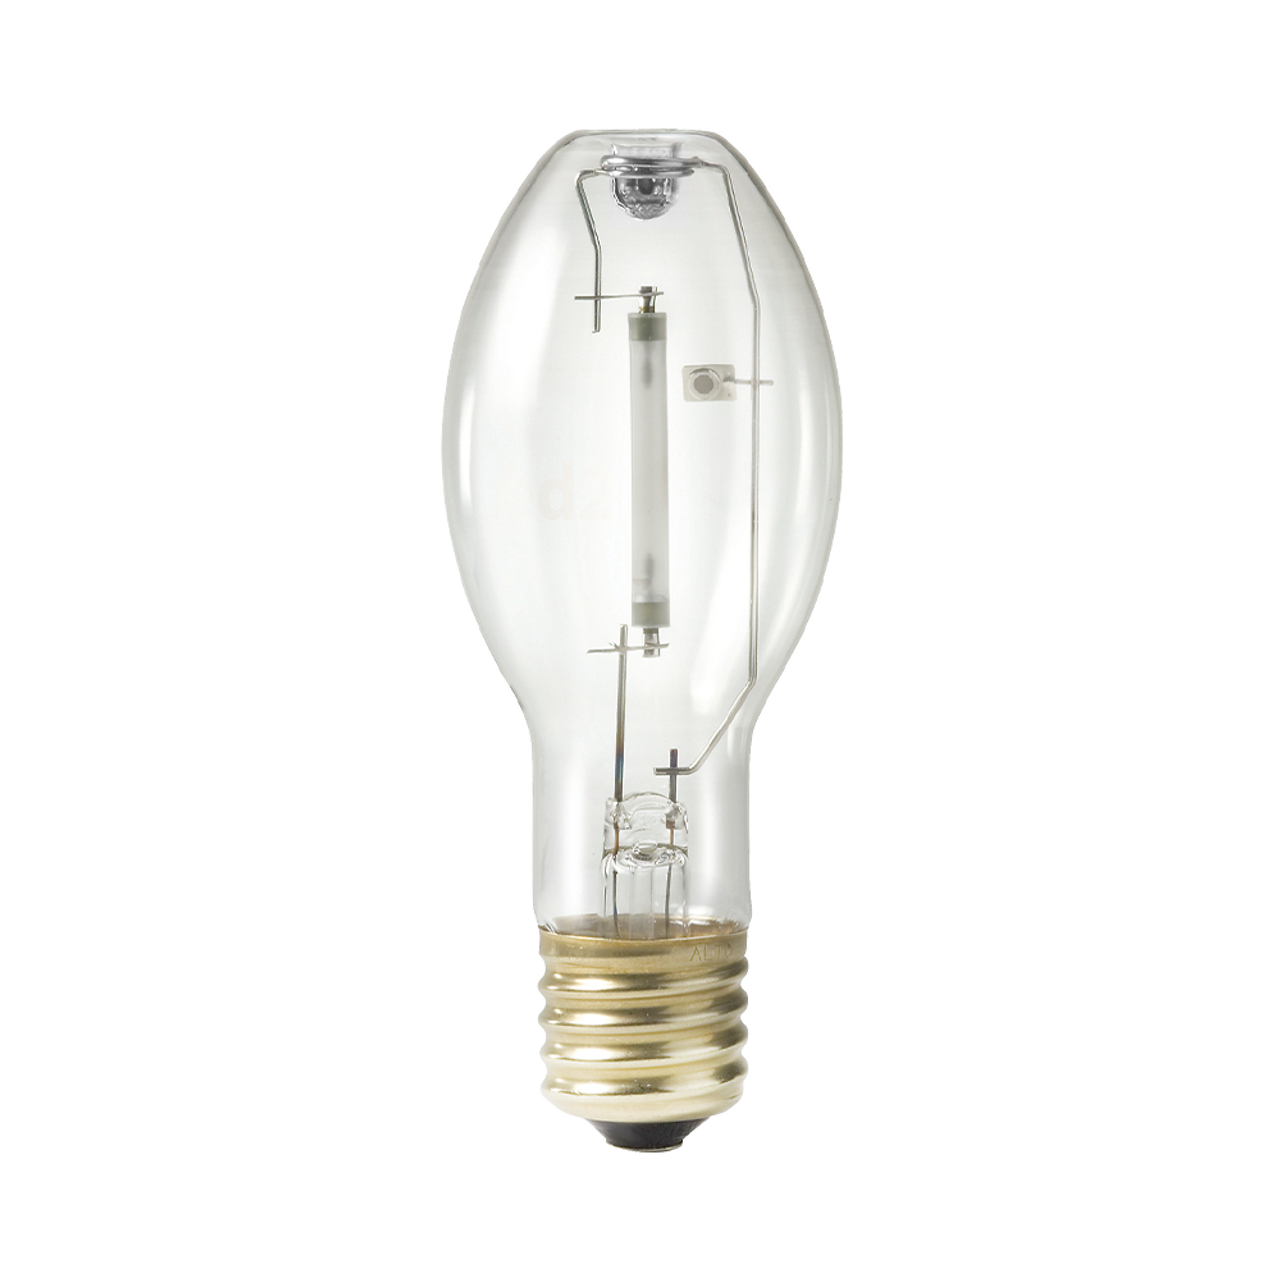 Replacement for Sylvania 23353 Light Bulb This Bulb is Not Manufactured by Sylvania is Compatible with Sylvania 2 Pack